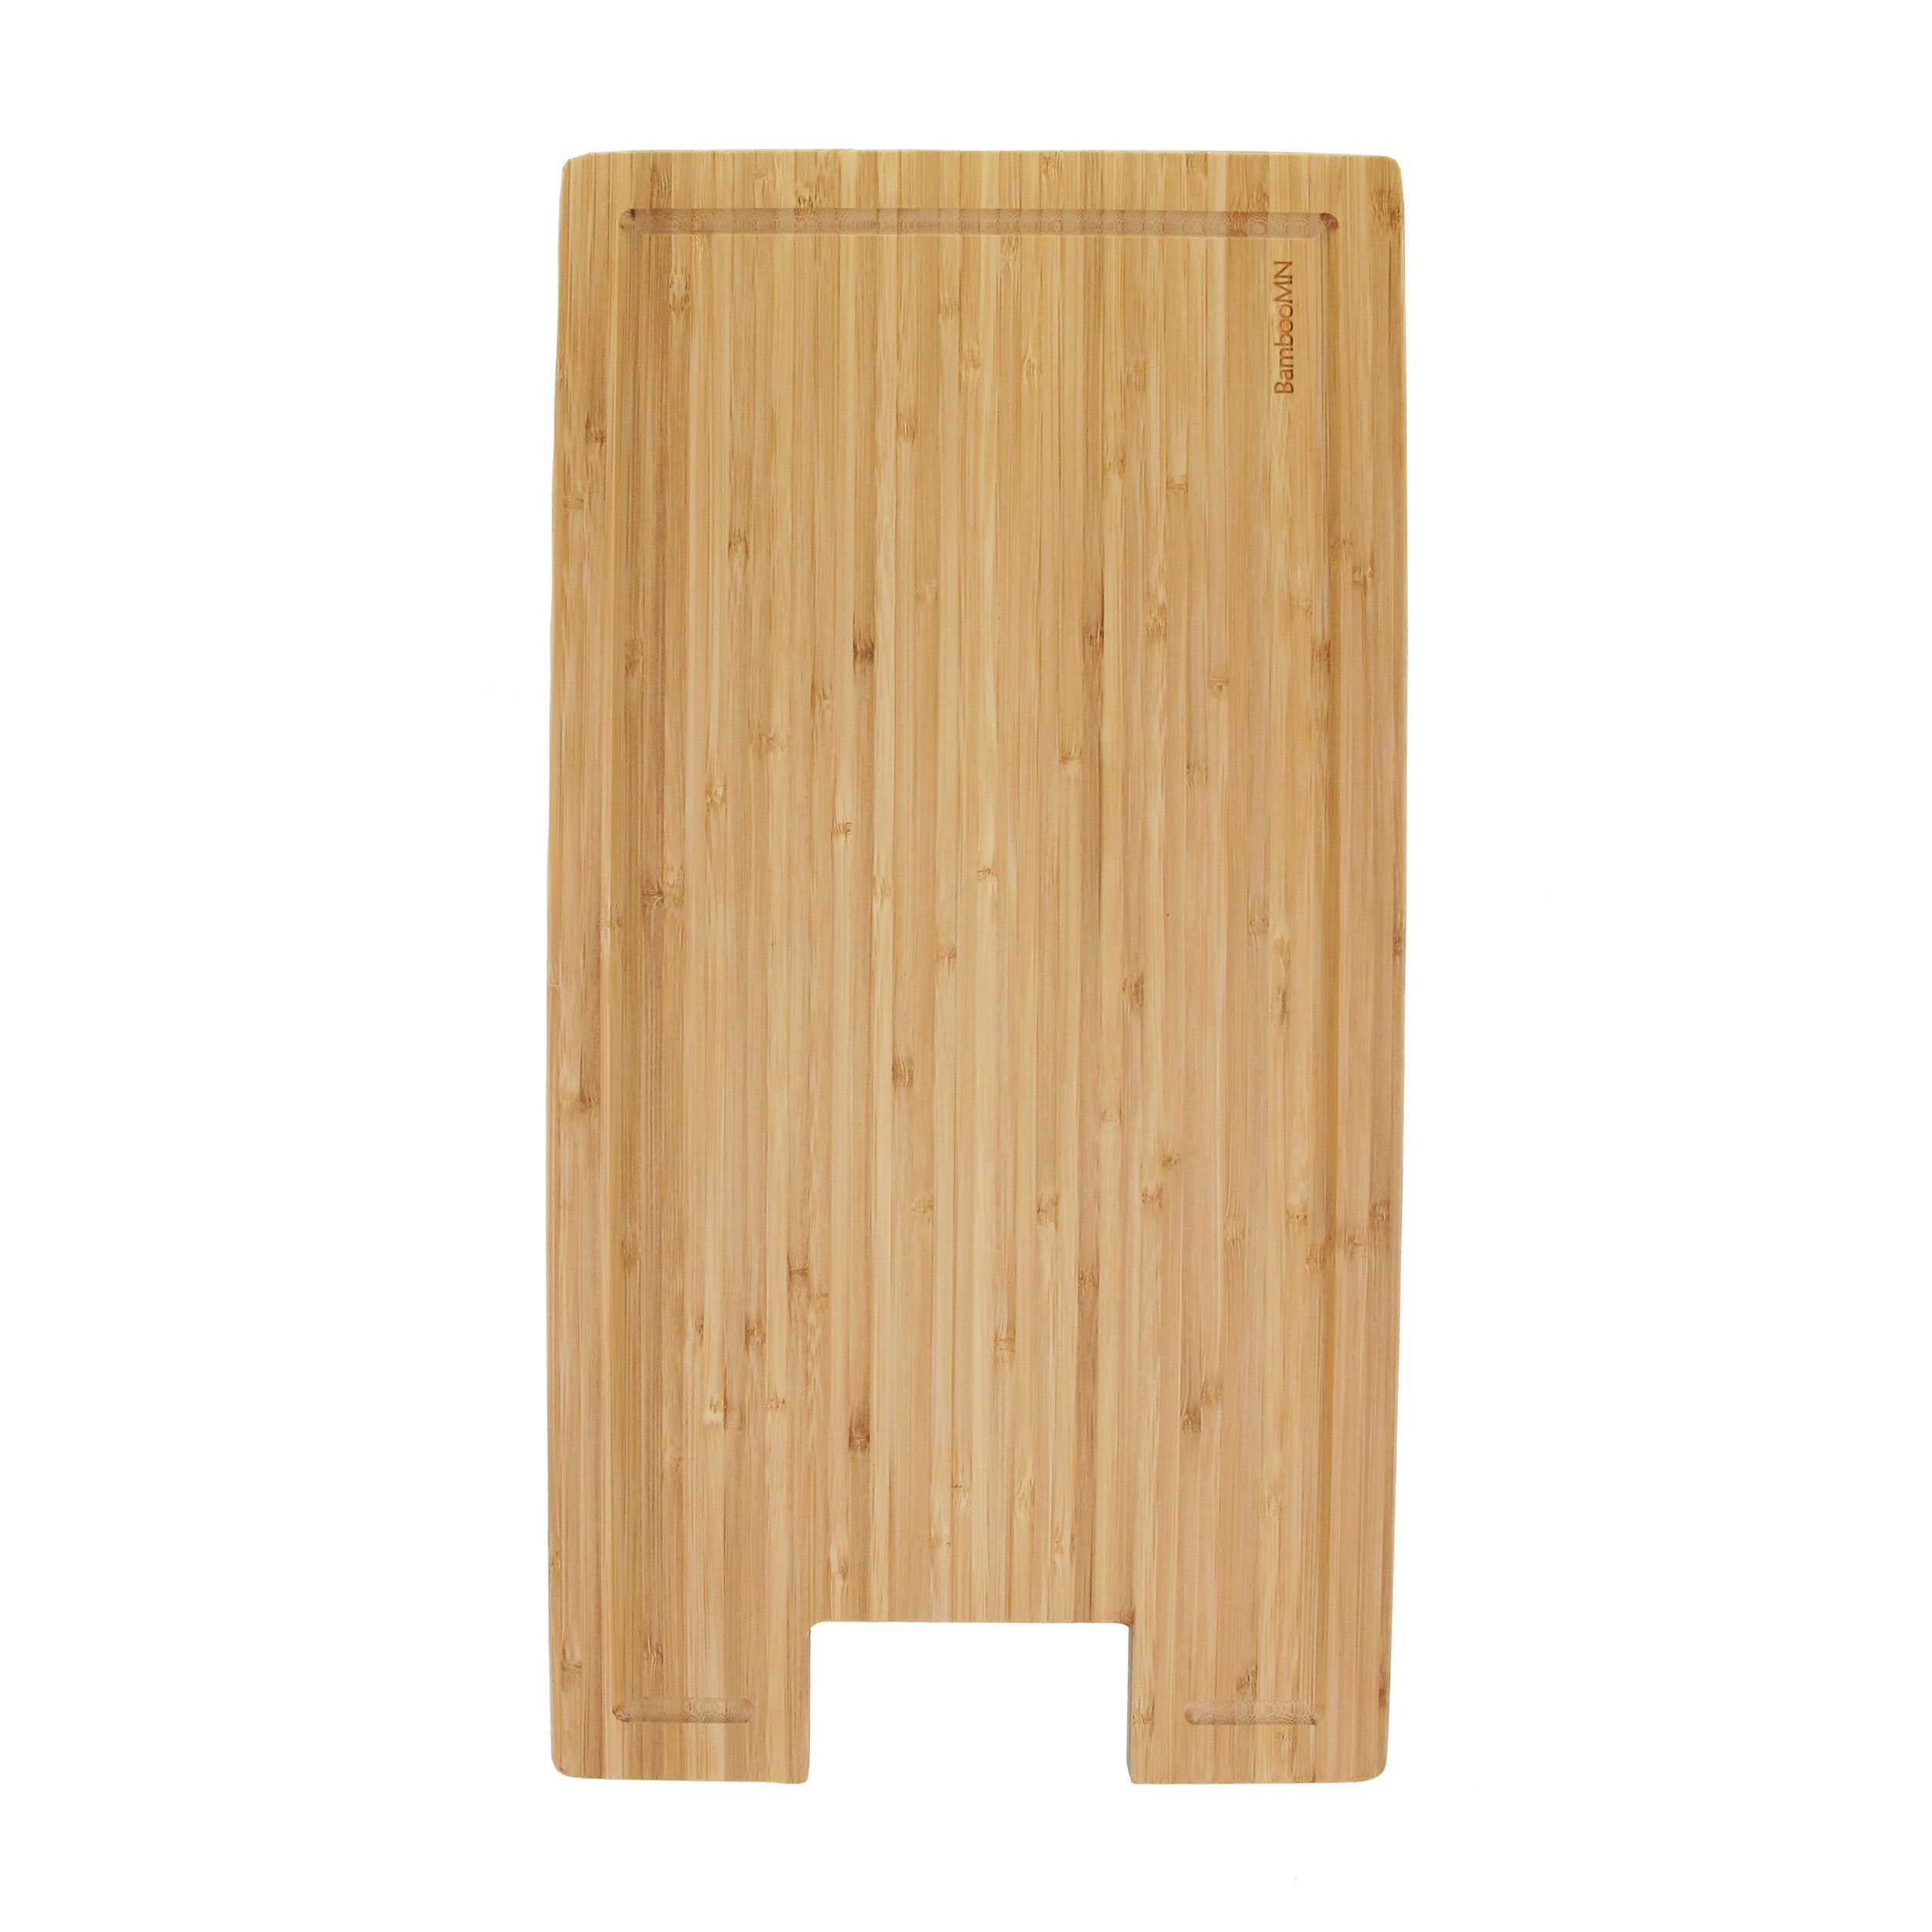 BambooMN Brand Bamboo Griddle Cover/Cutting Board for Viking Cooktops, New Vertical Cut, Small (10.25''x19.8''x0.75'')